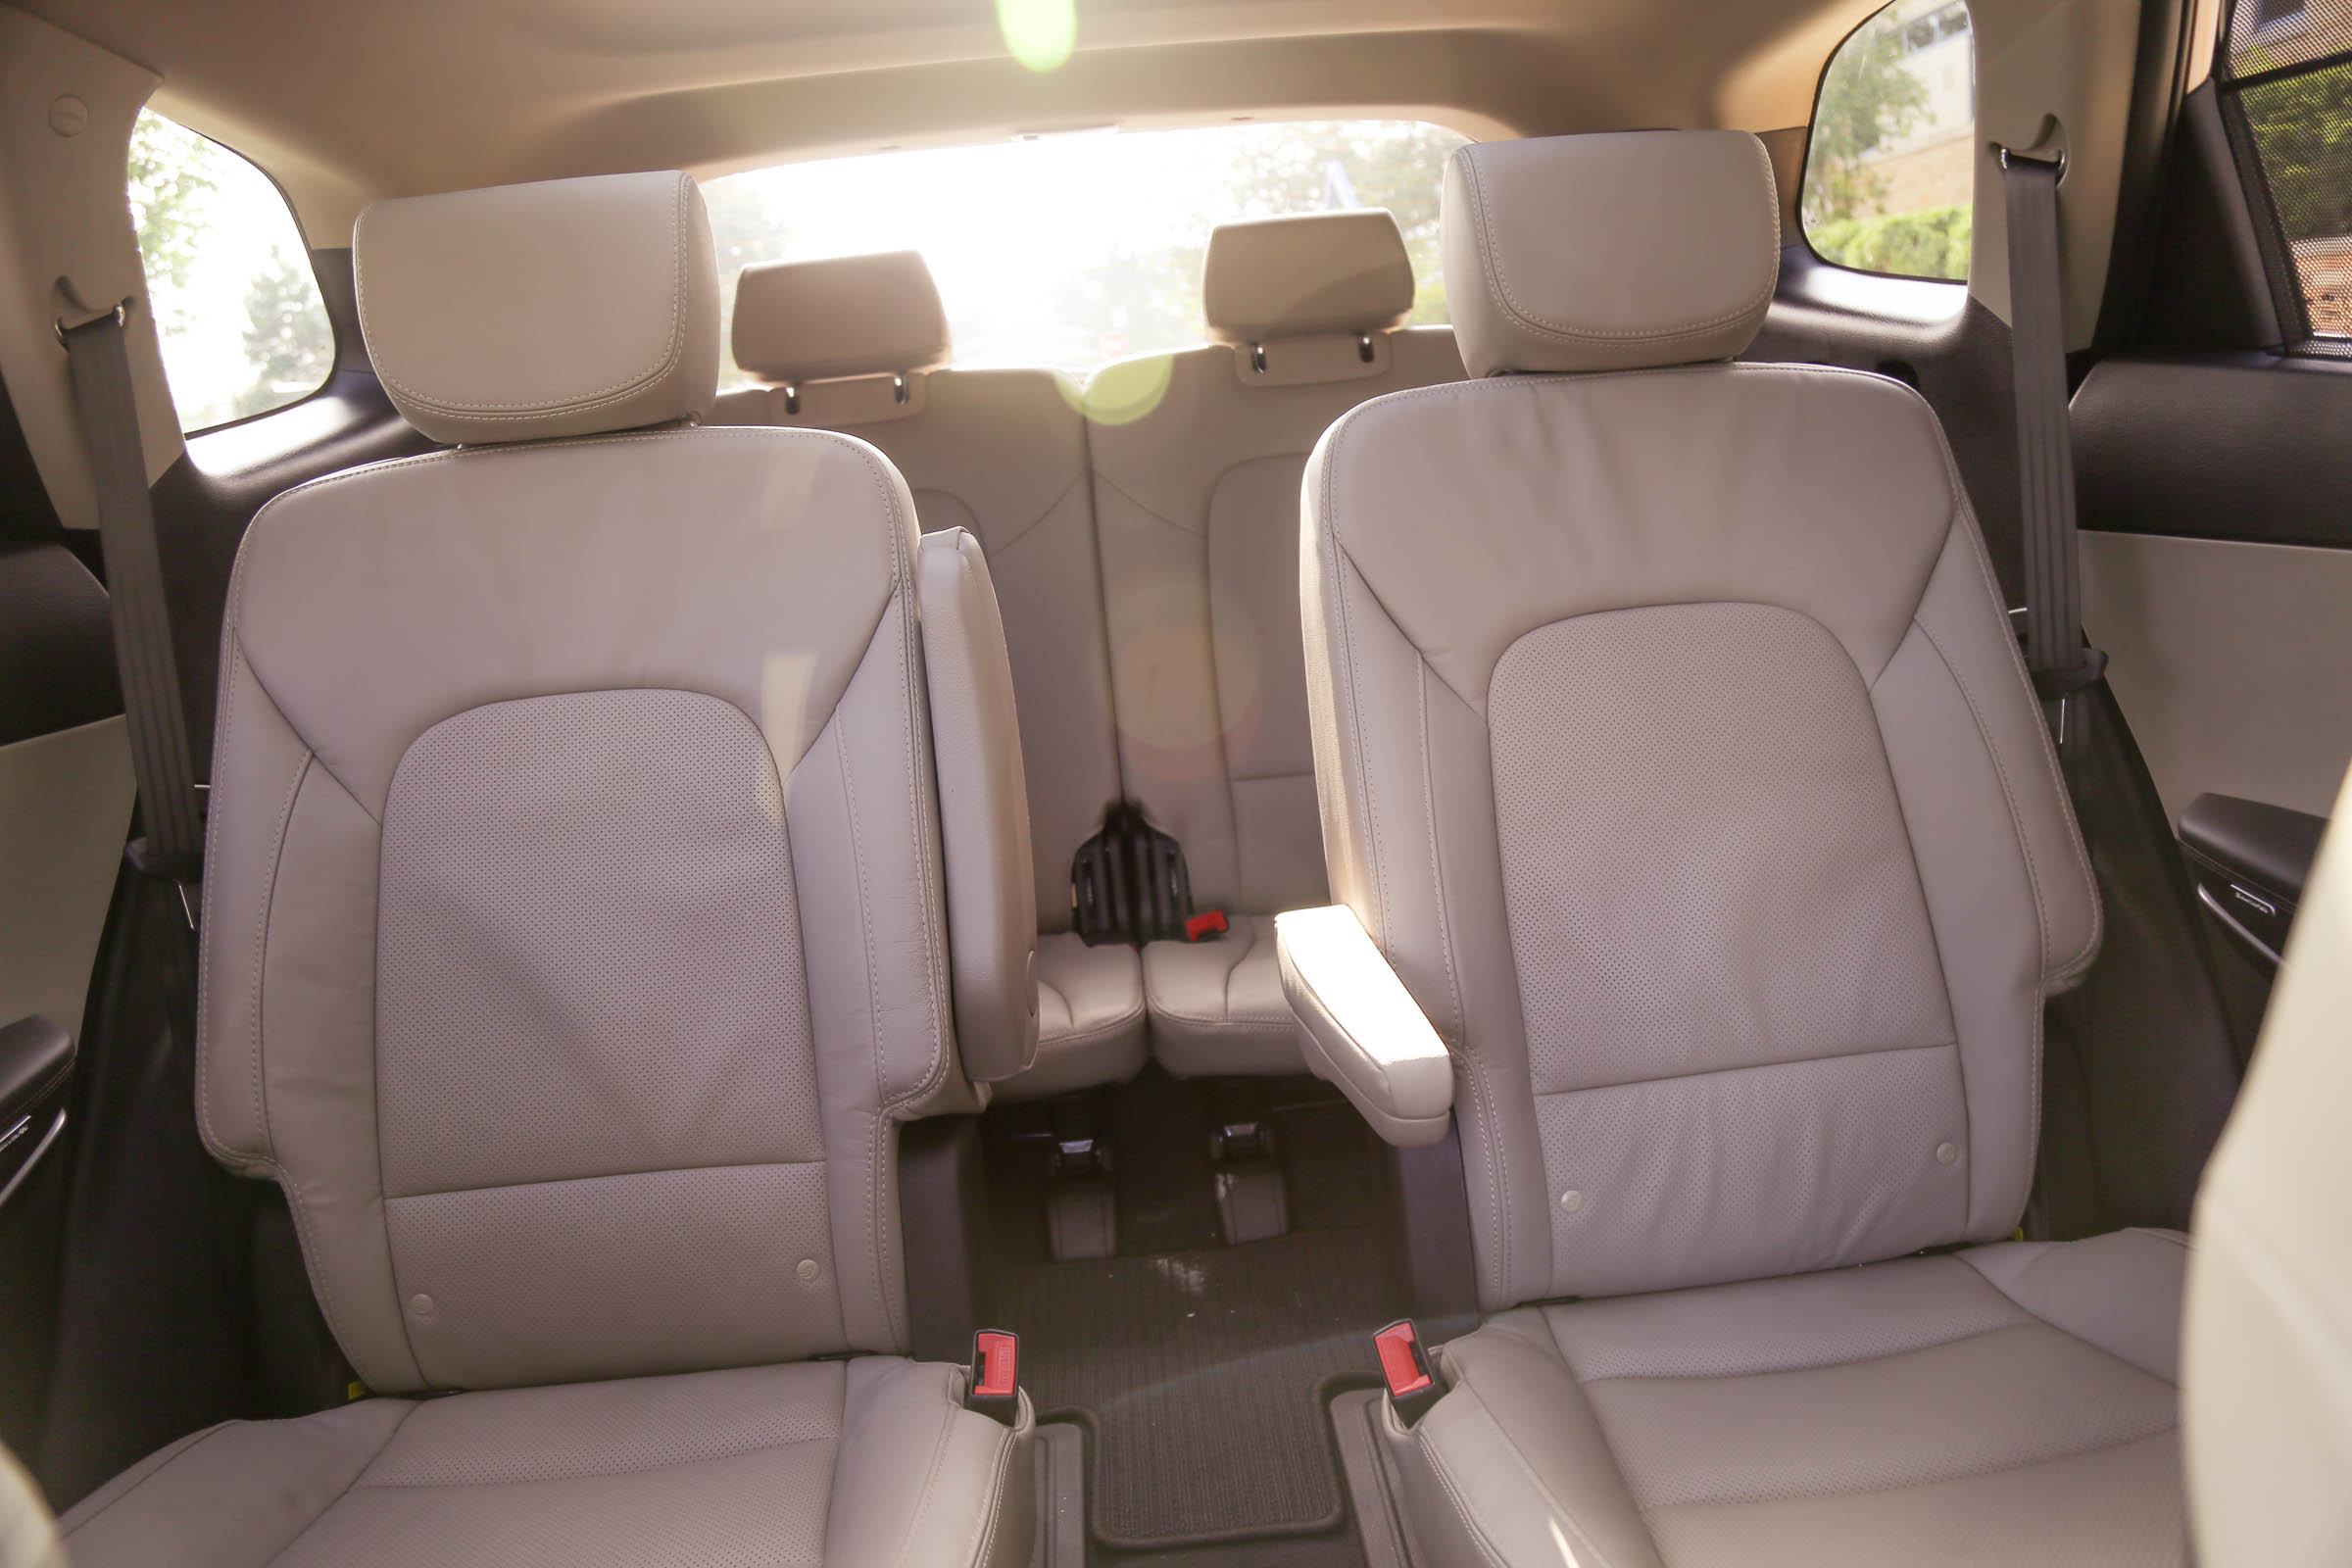 Santa Fe V6 with Captains chair and 3rd row seating